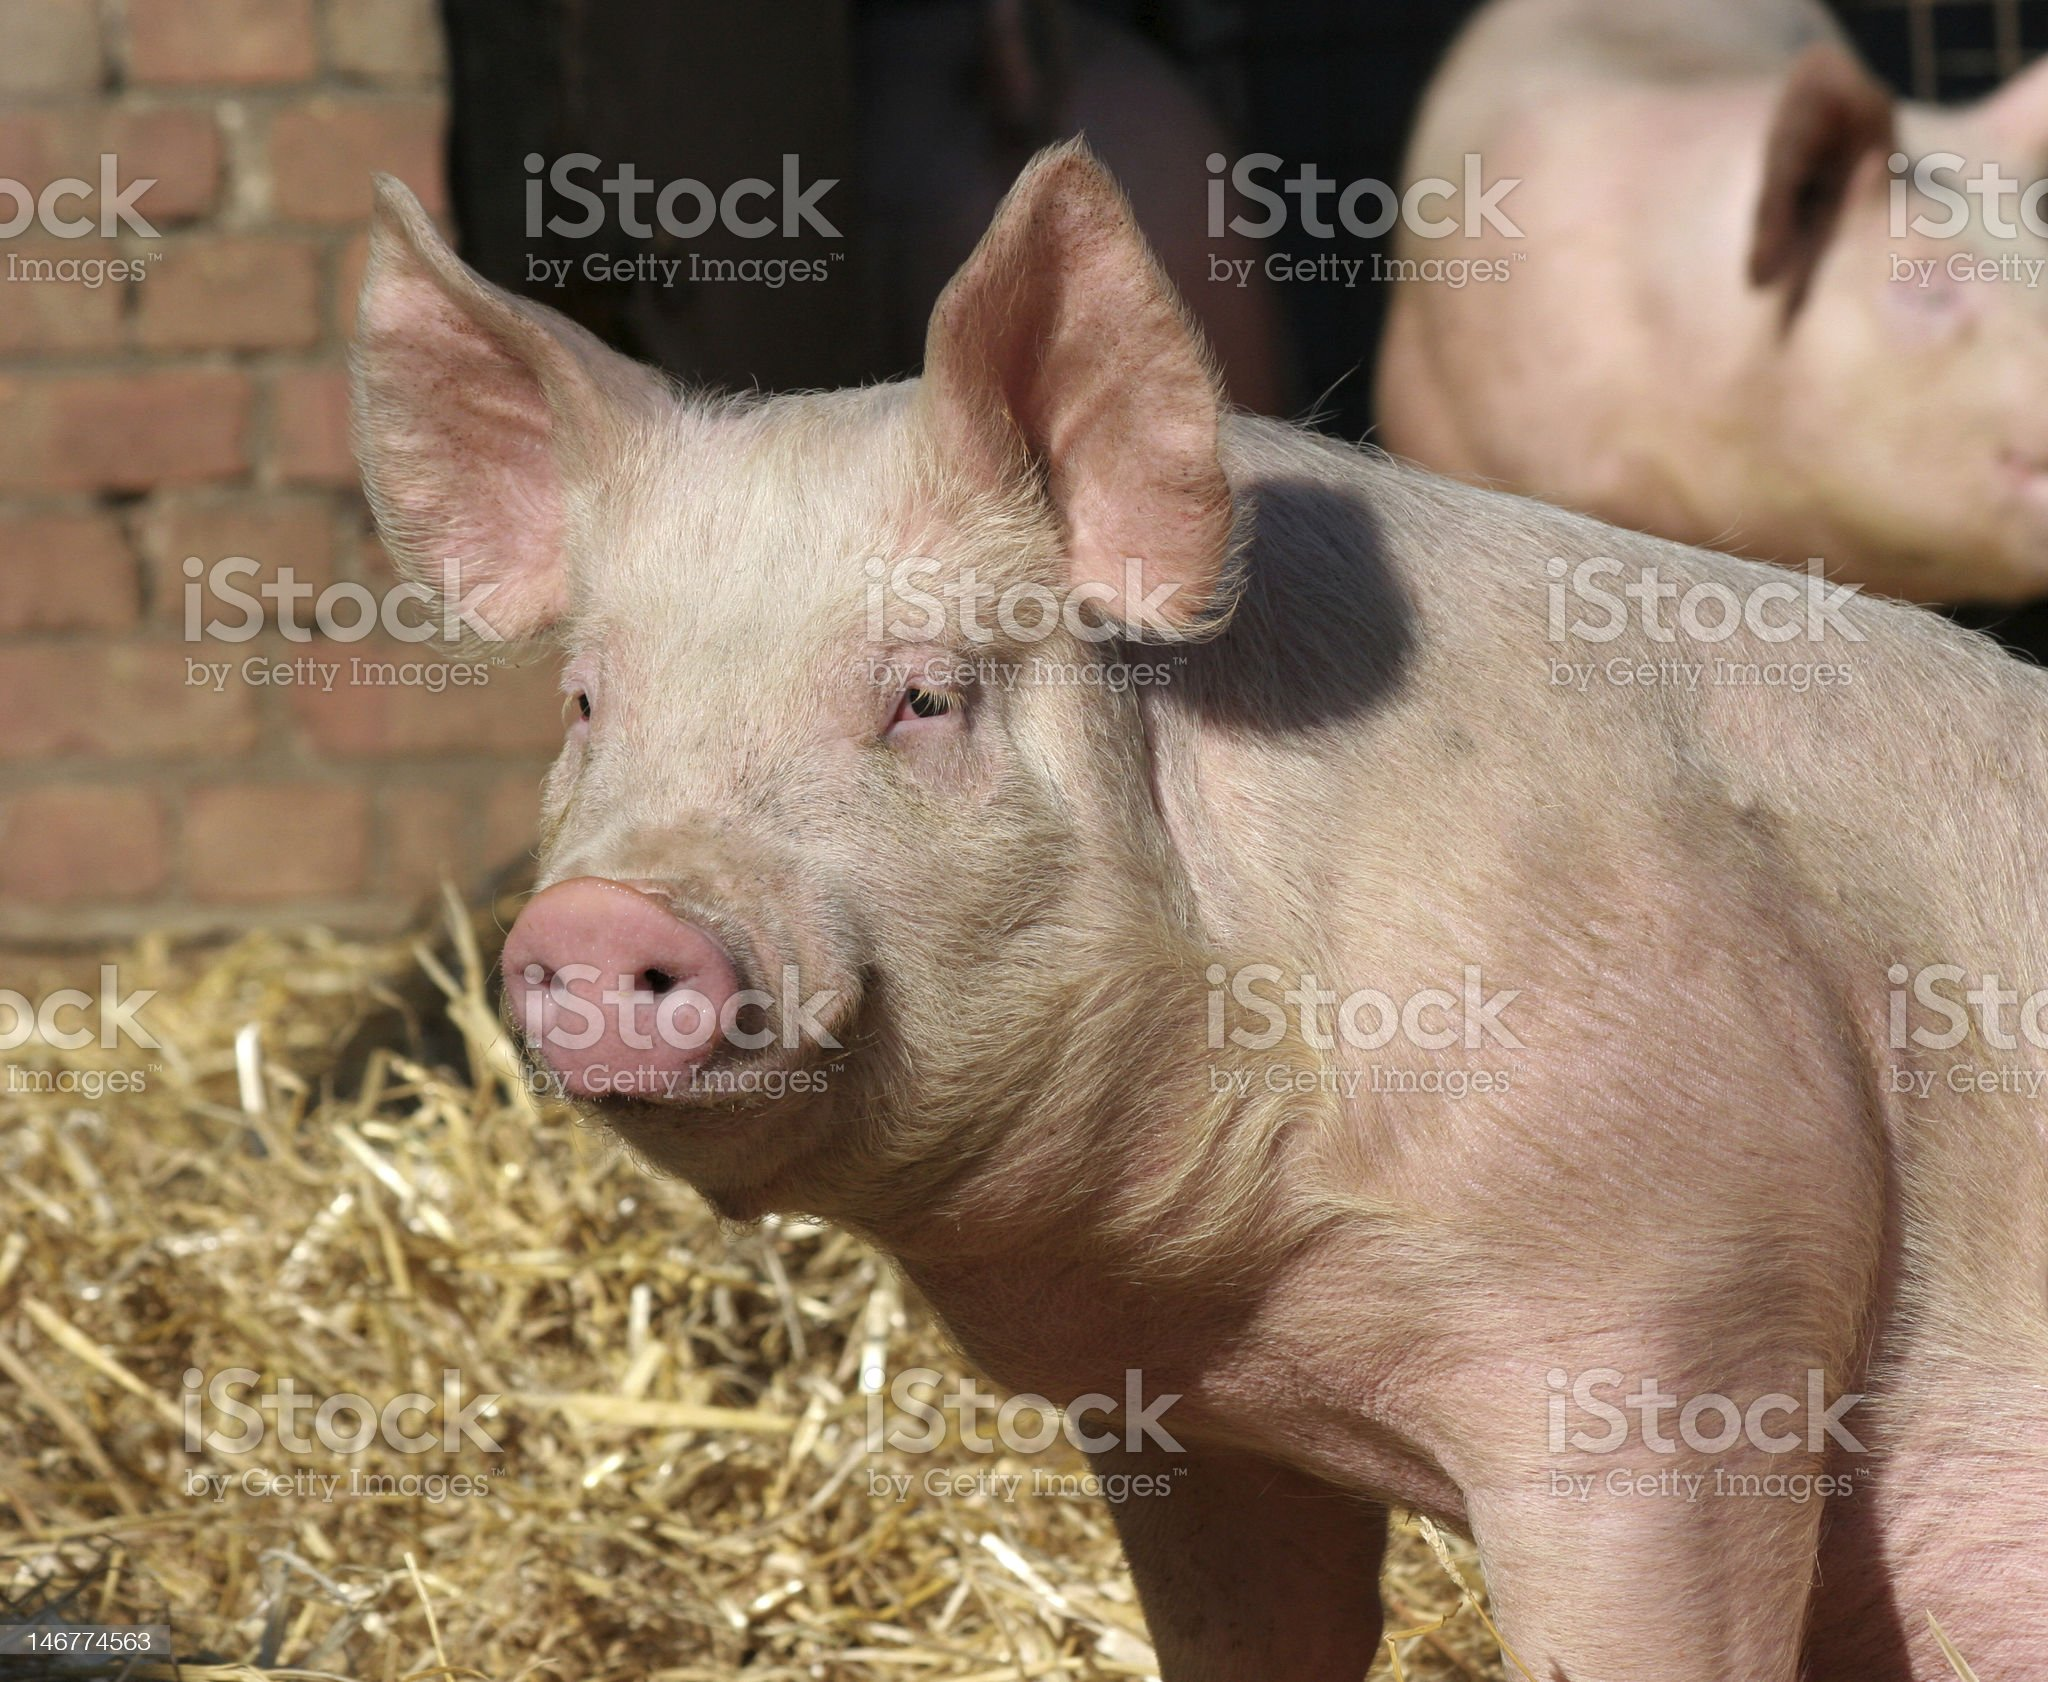 Large pig on a farm with hay in background royalty-free stock photo